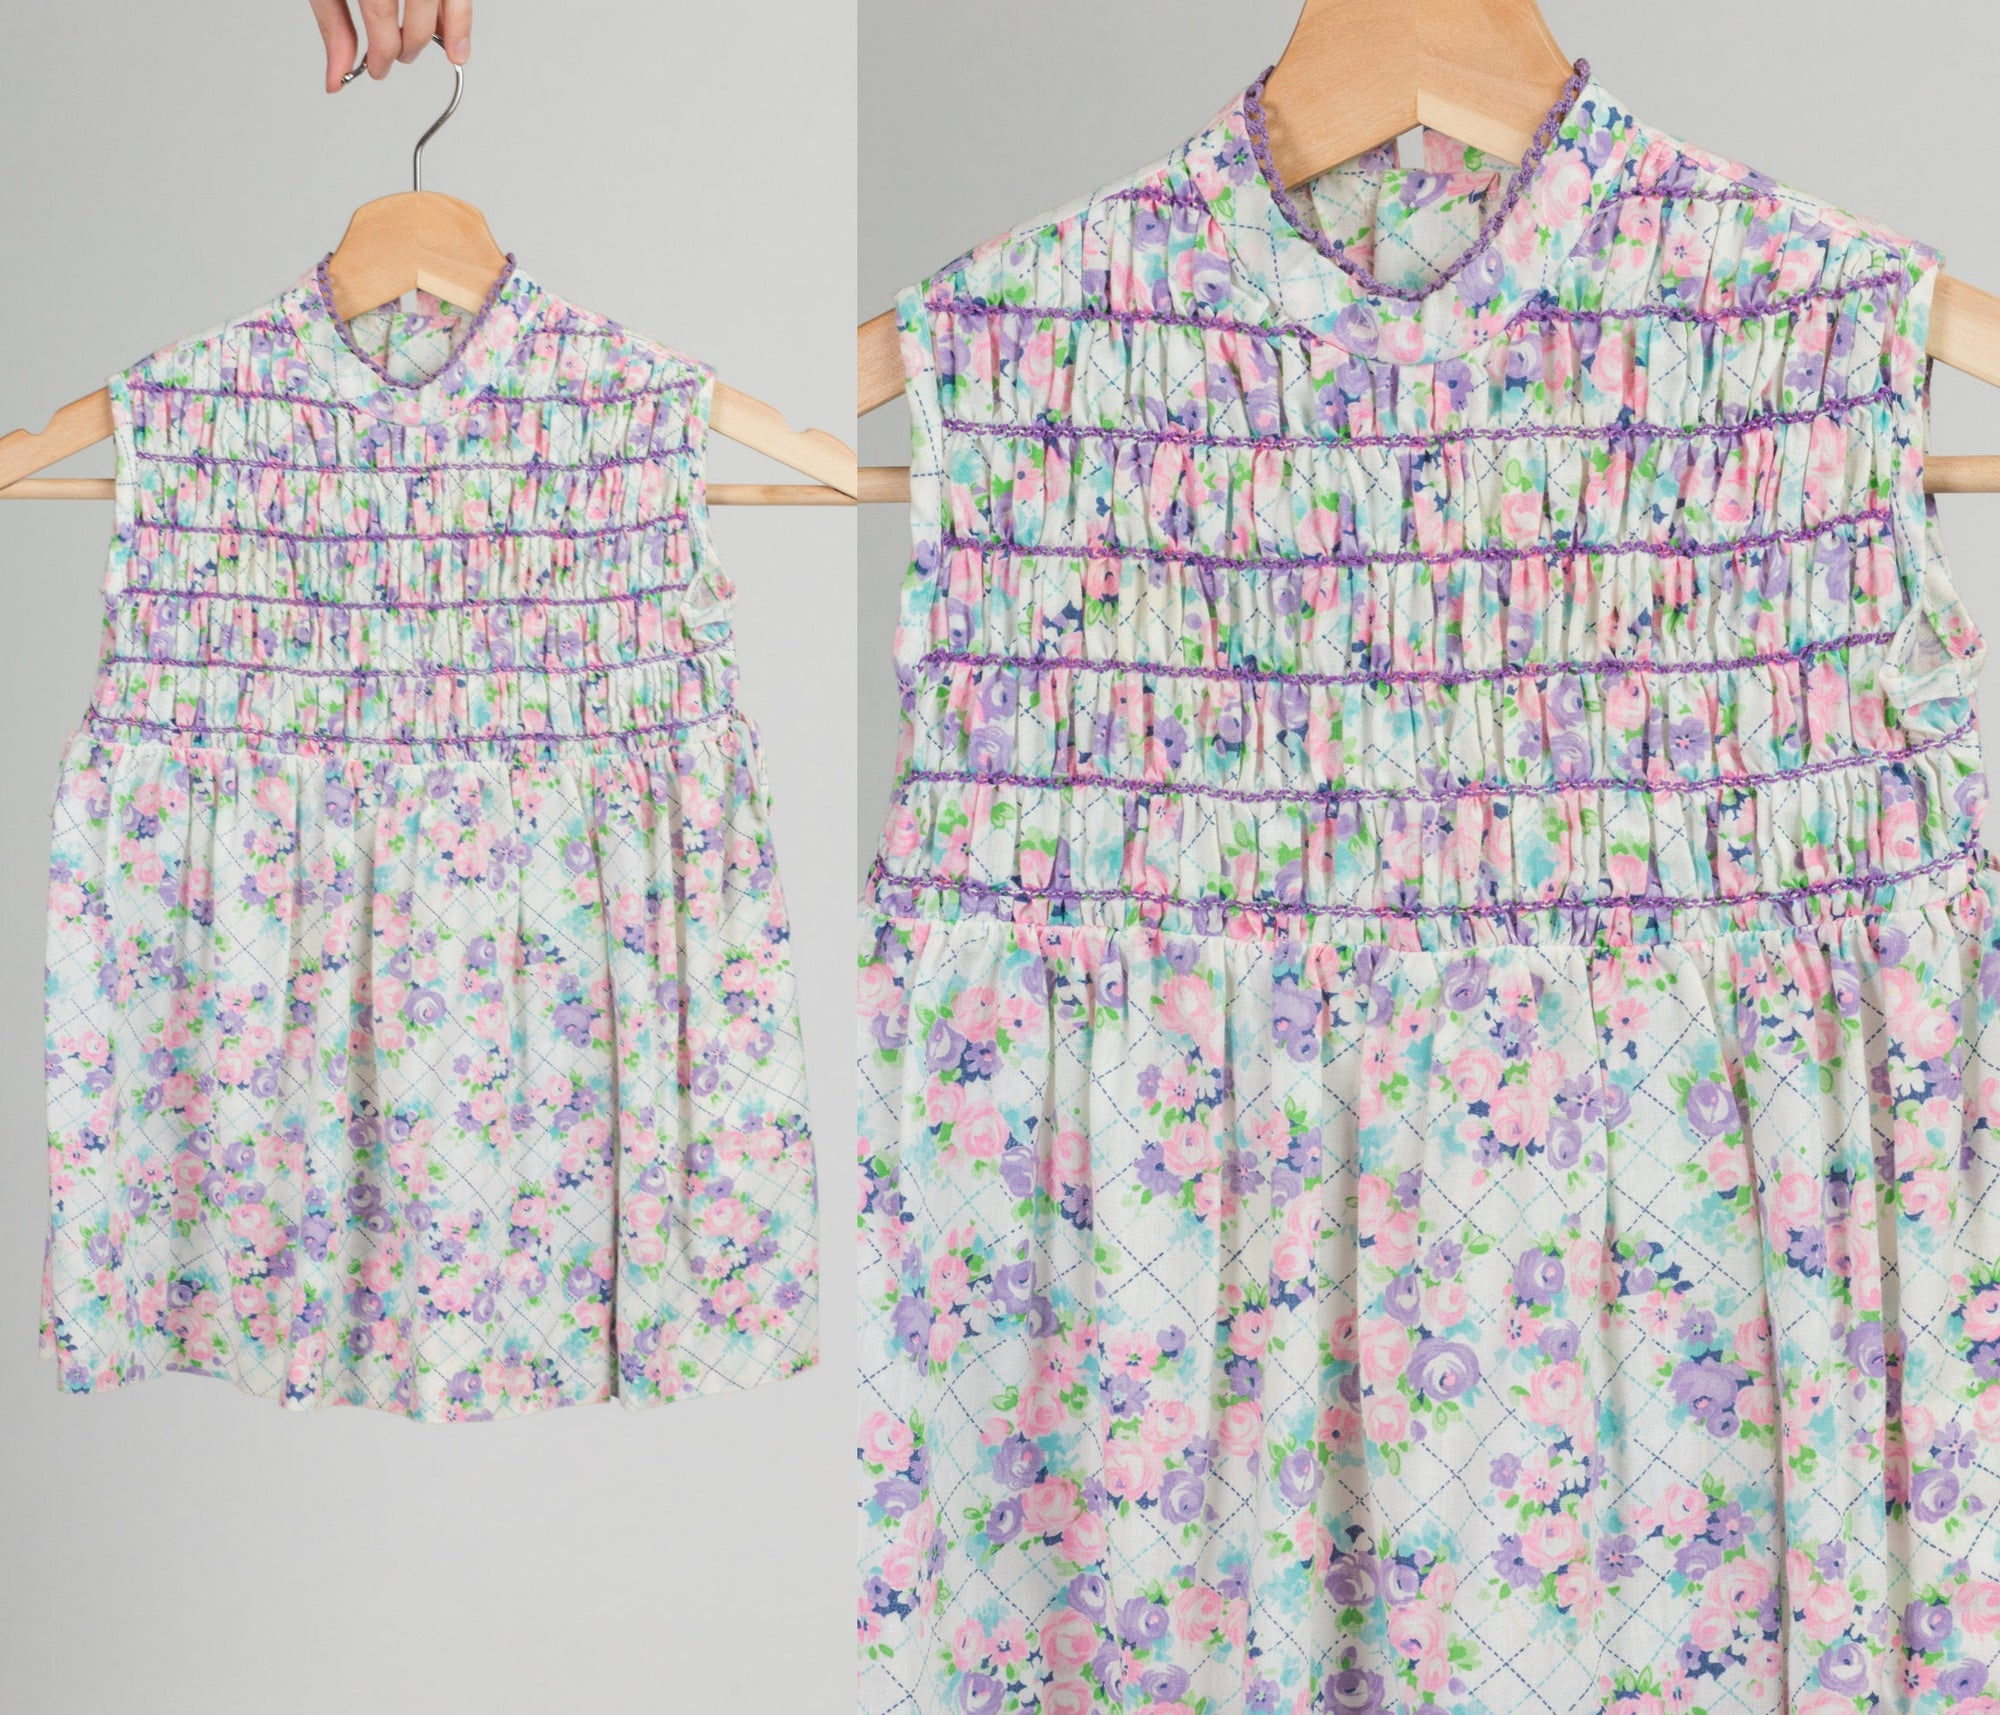 60s 70s Polly Flinders Smocked Girl's Dress - Size 5 | Vintage Floral Sleeveless Dress